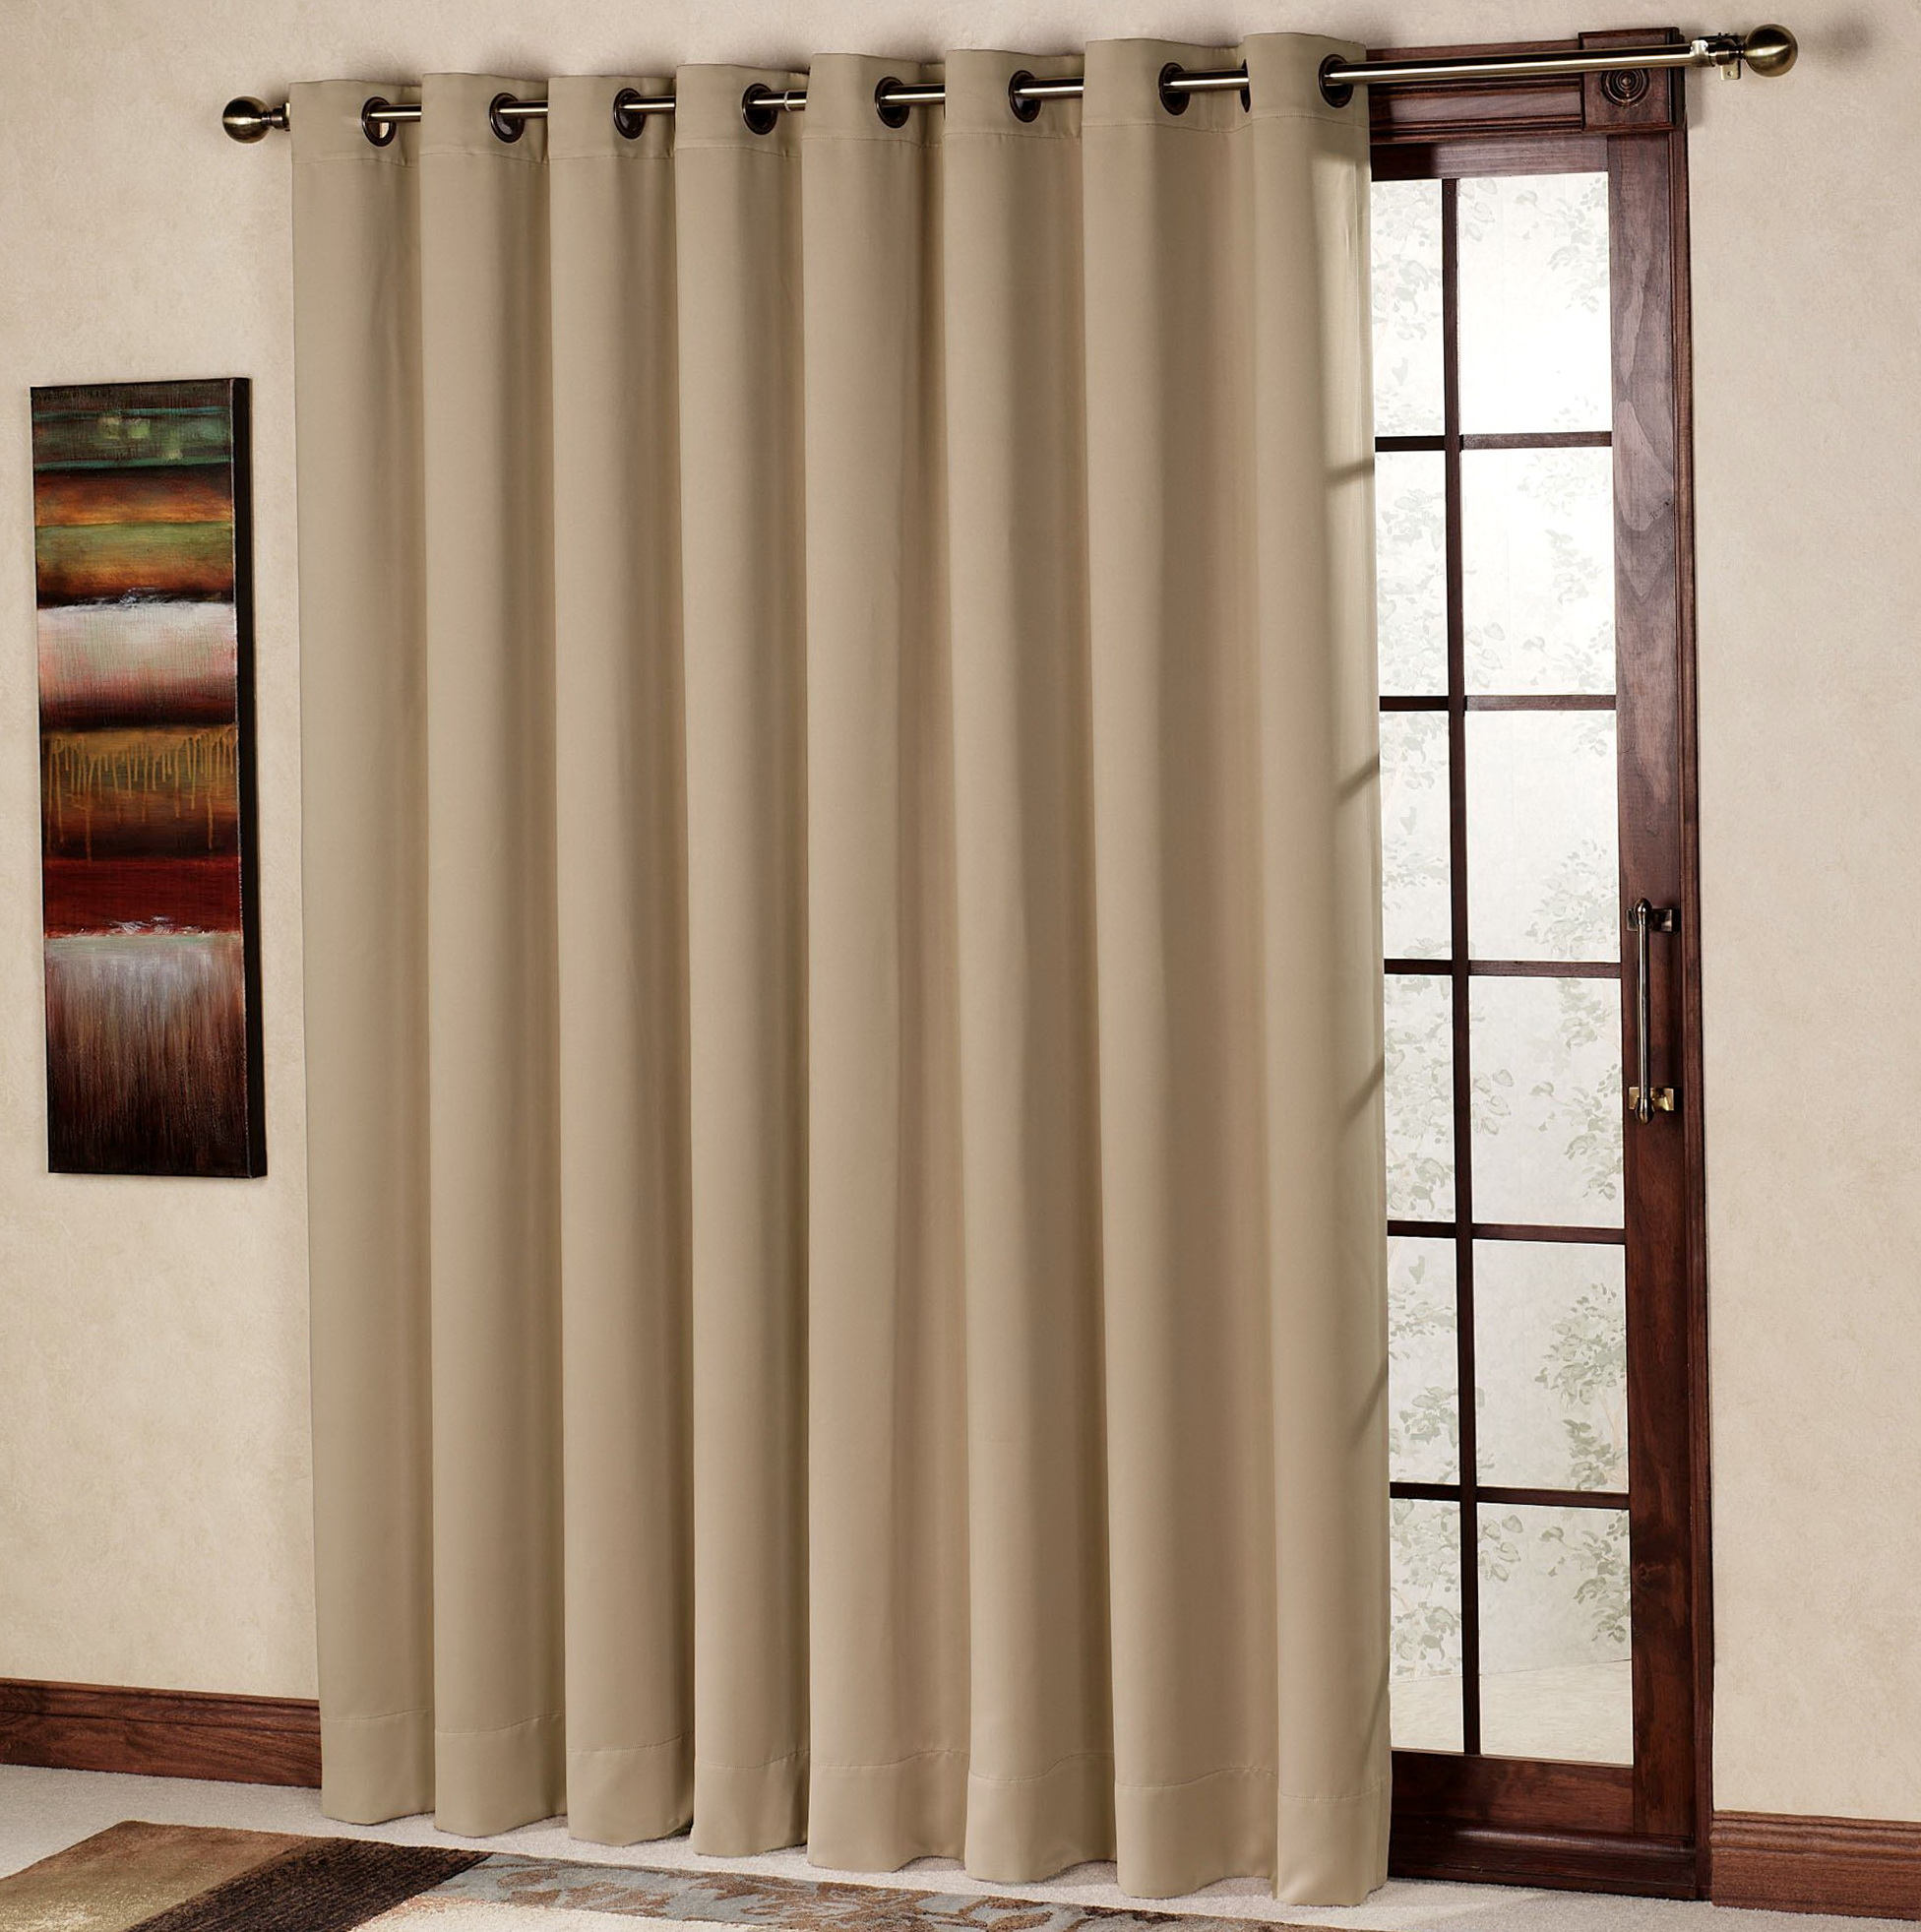 Single panel curtain for sliding glass door home design for Single sliding glass door